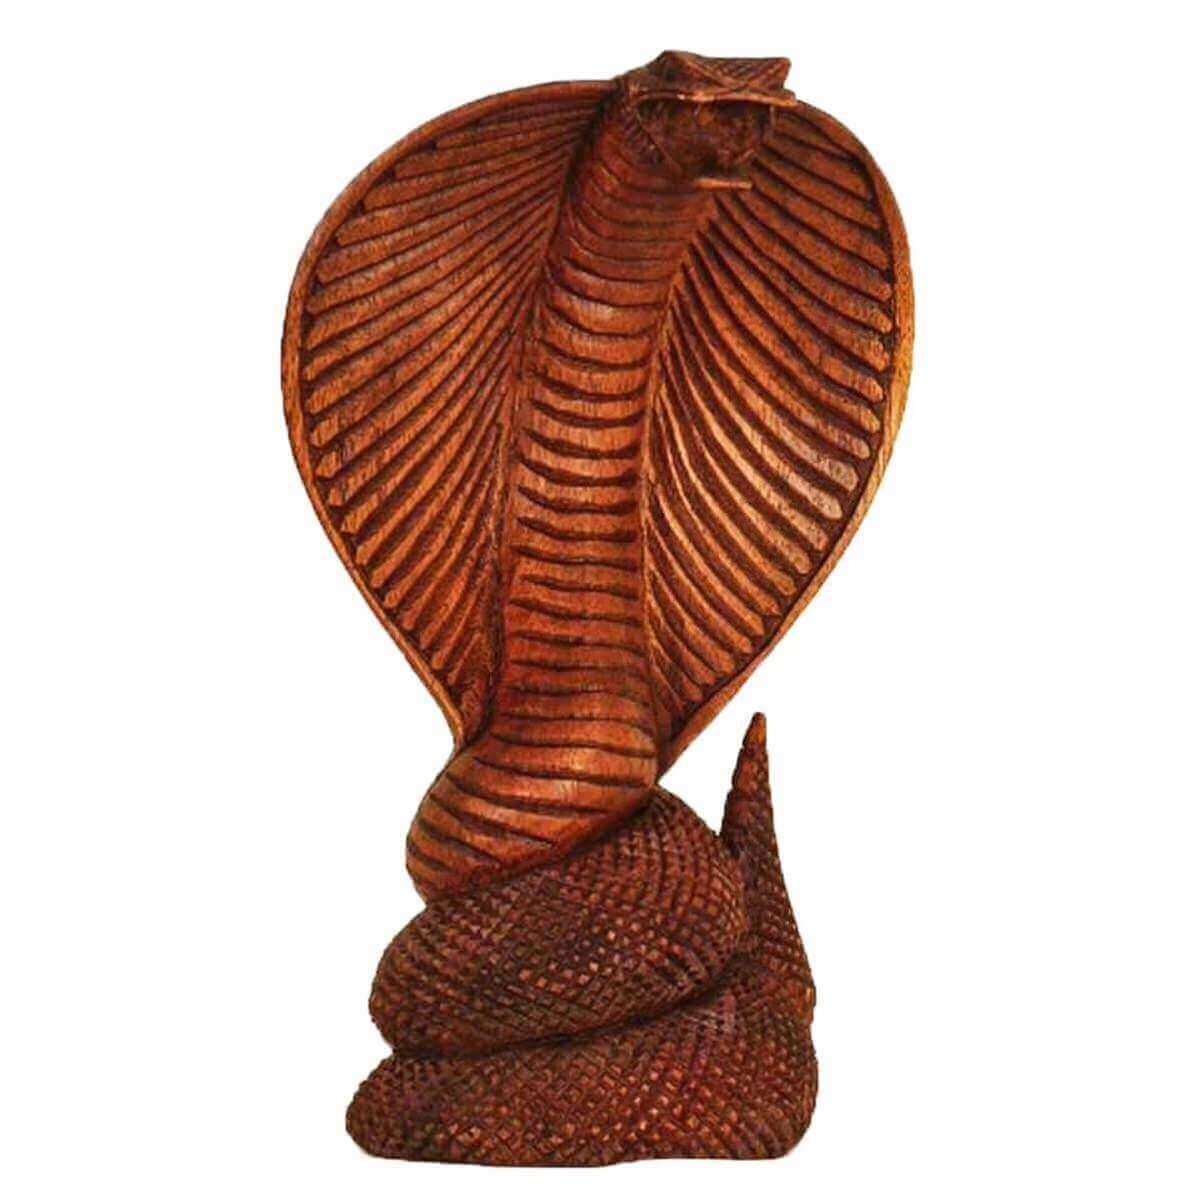 cobra bois statue sculpture abstrait figurine en afrique asie fait la main ebay. Black Bedroom Furniture Sets. Home Design Ideas